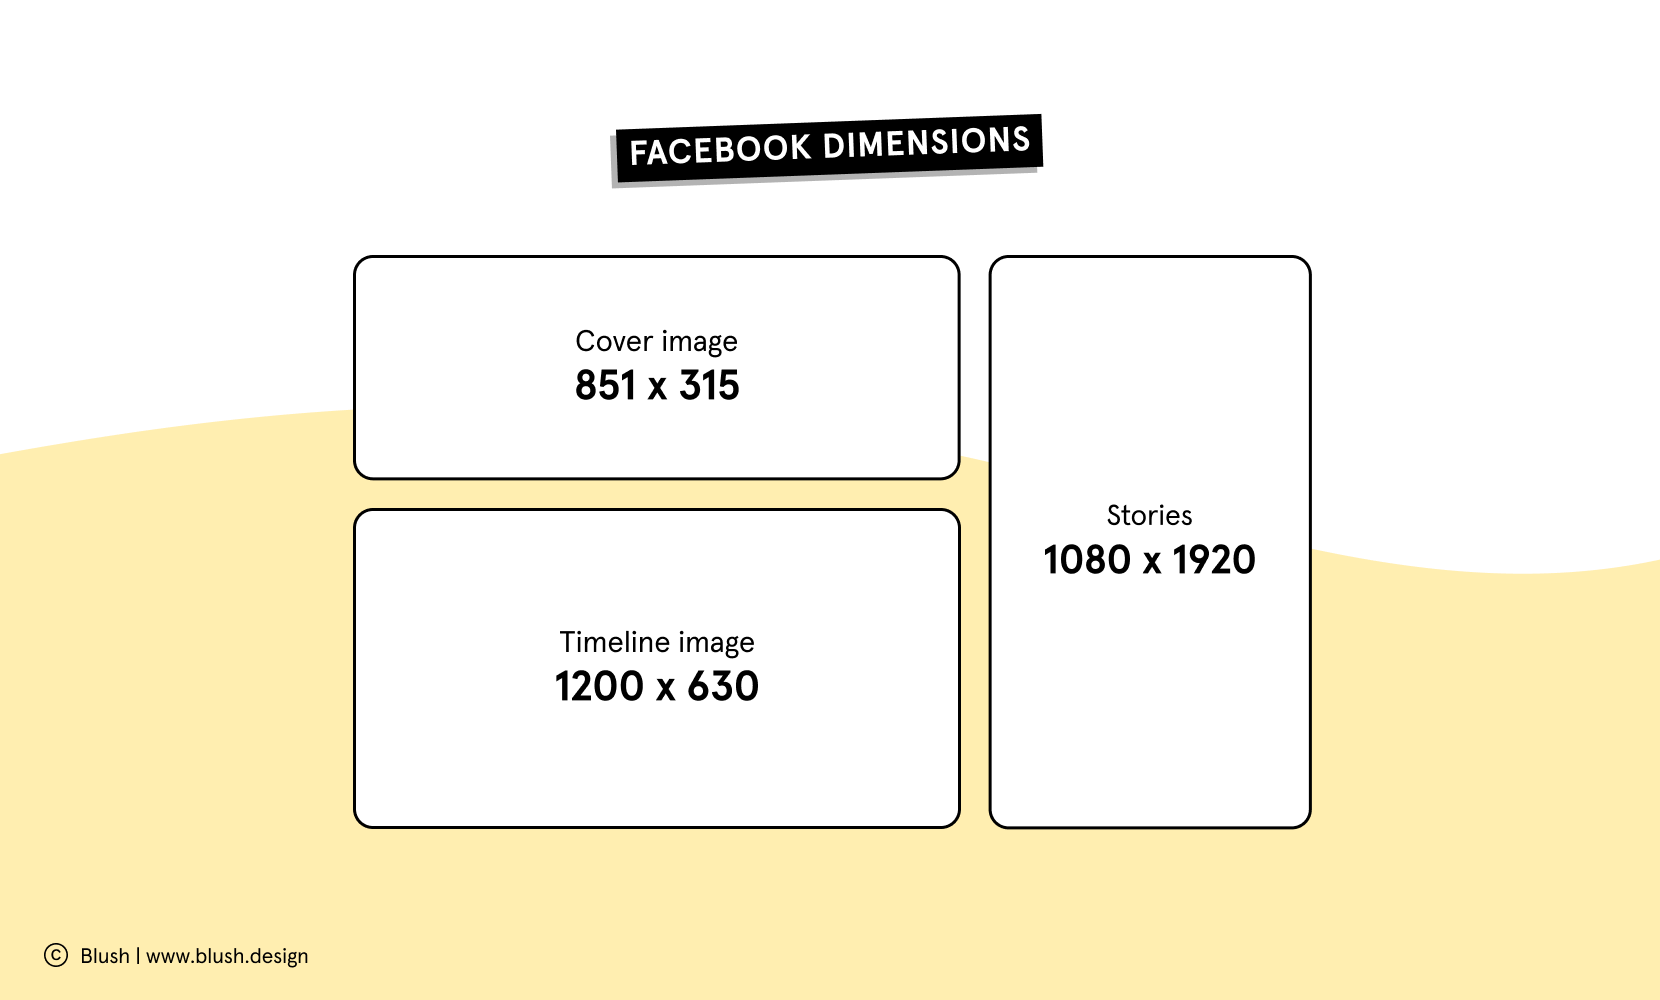 Facebook dimensions. Covr image 851 x 315, Timeline 12 0 x 630, stories 1080x1920